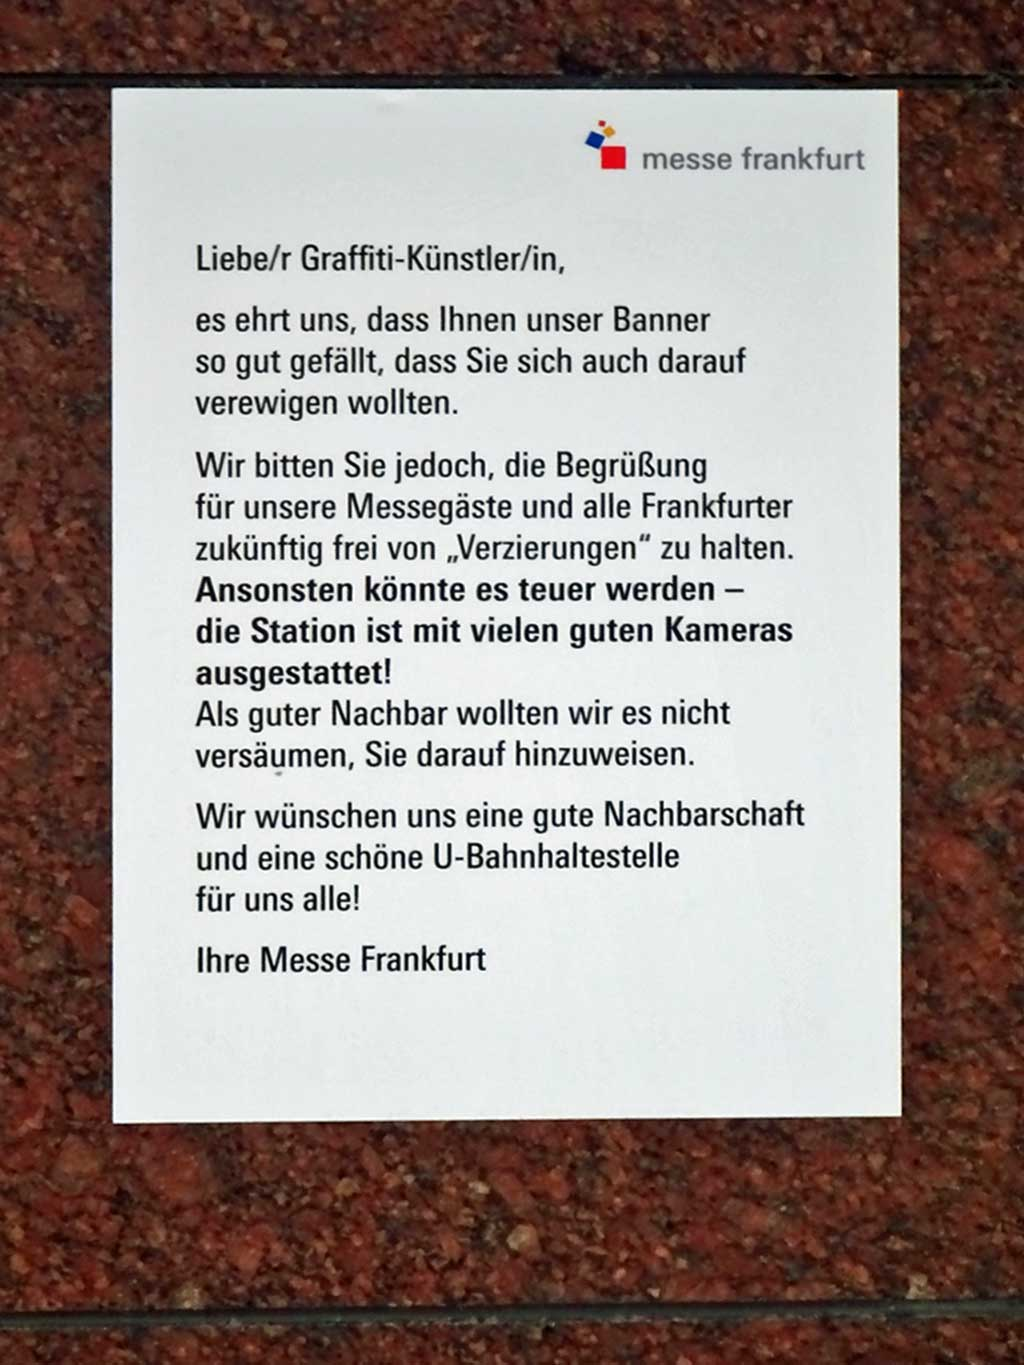 Messe Frankfurt mit Message an Graffiti-Küntsler/in